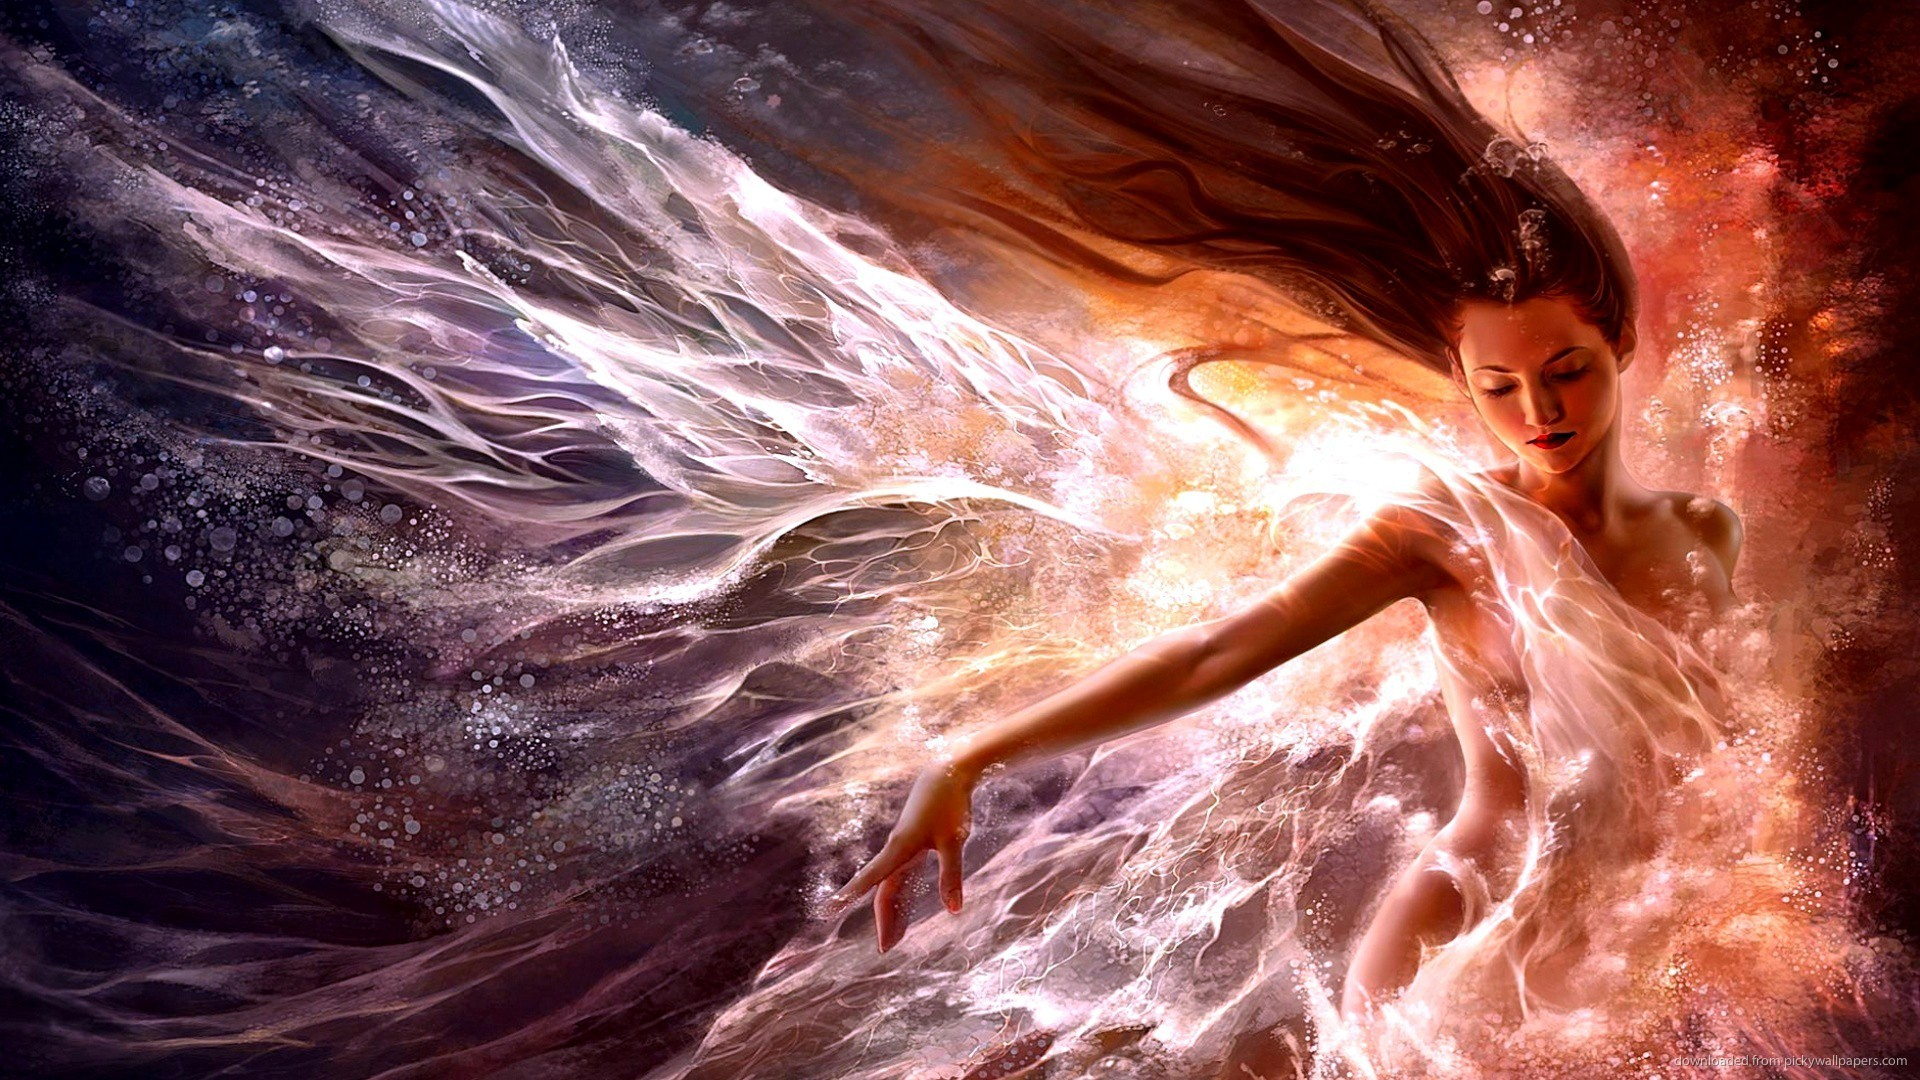 Collection of fairy wallpaper hd on hdwallpapers 1920x1080 voltagebd Image collections